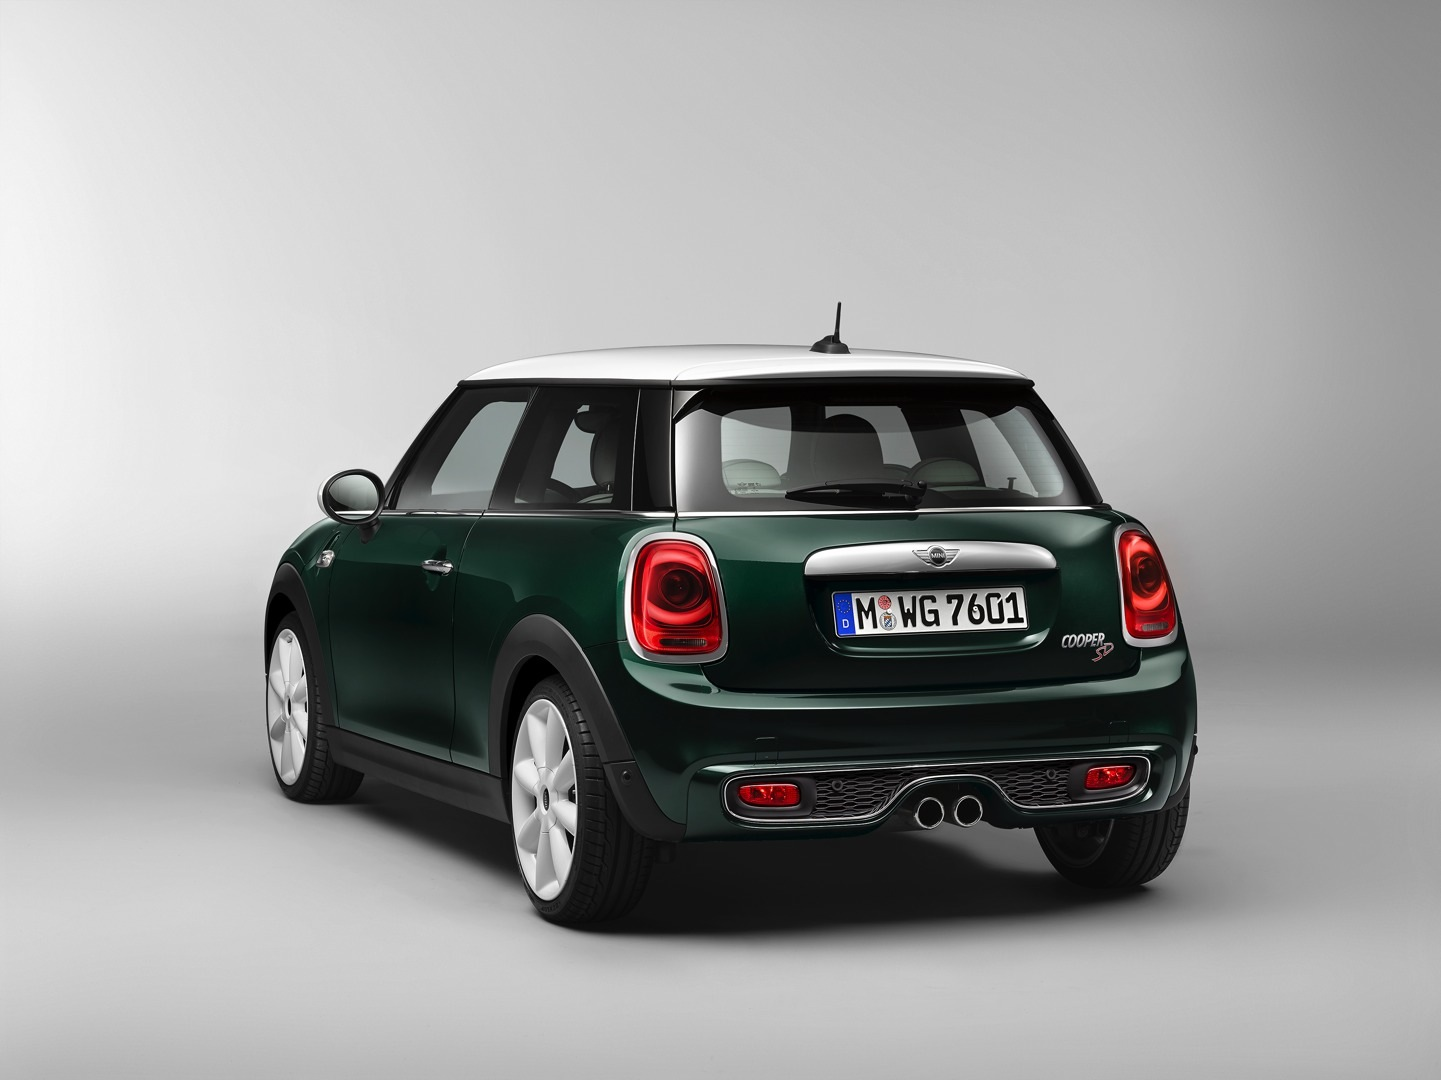 2014 mini cooper will have a brand new gearbox - autoevolution